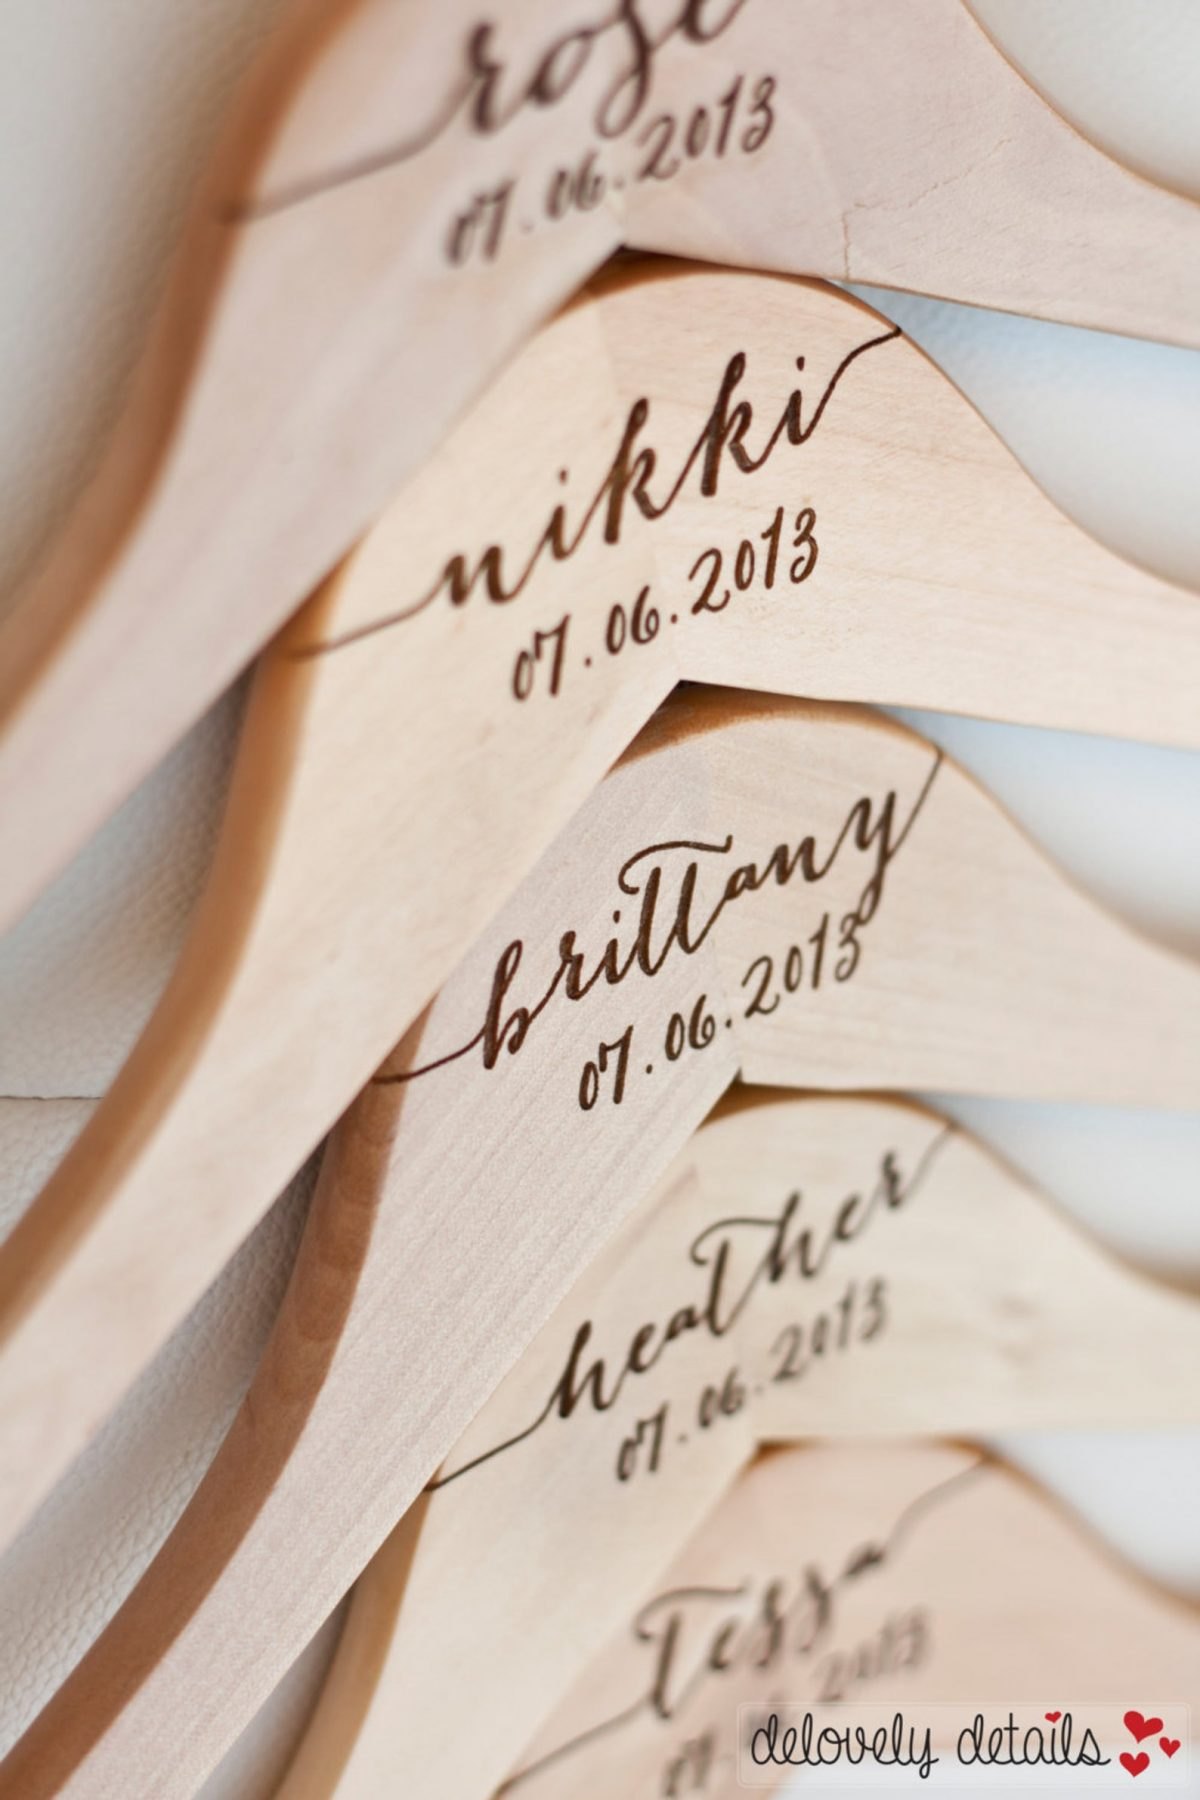 Personalized Wooden Hangers from Delovely Details